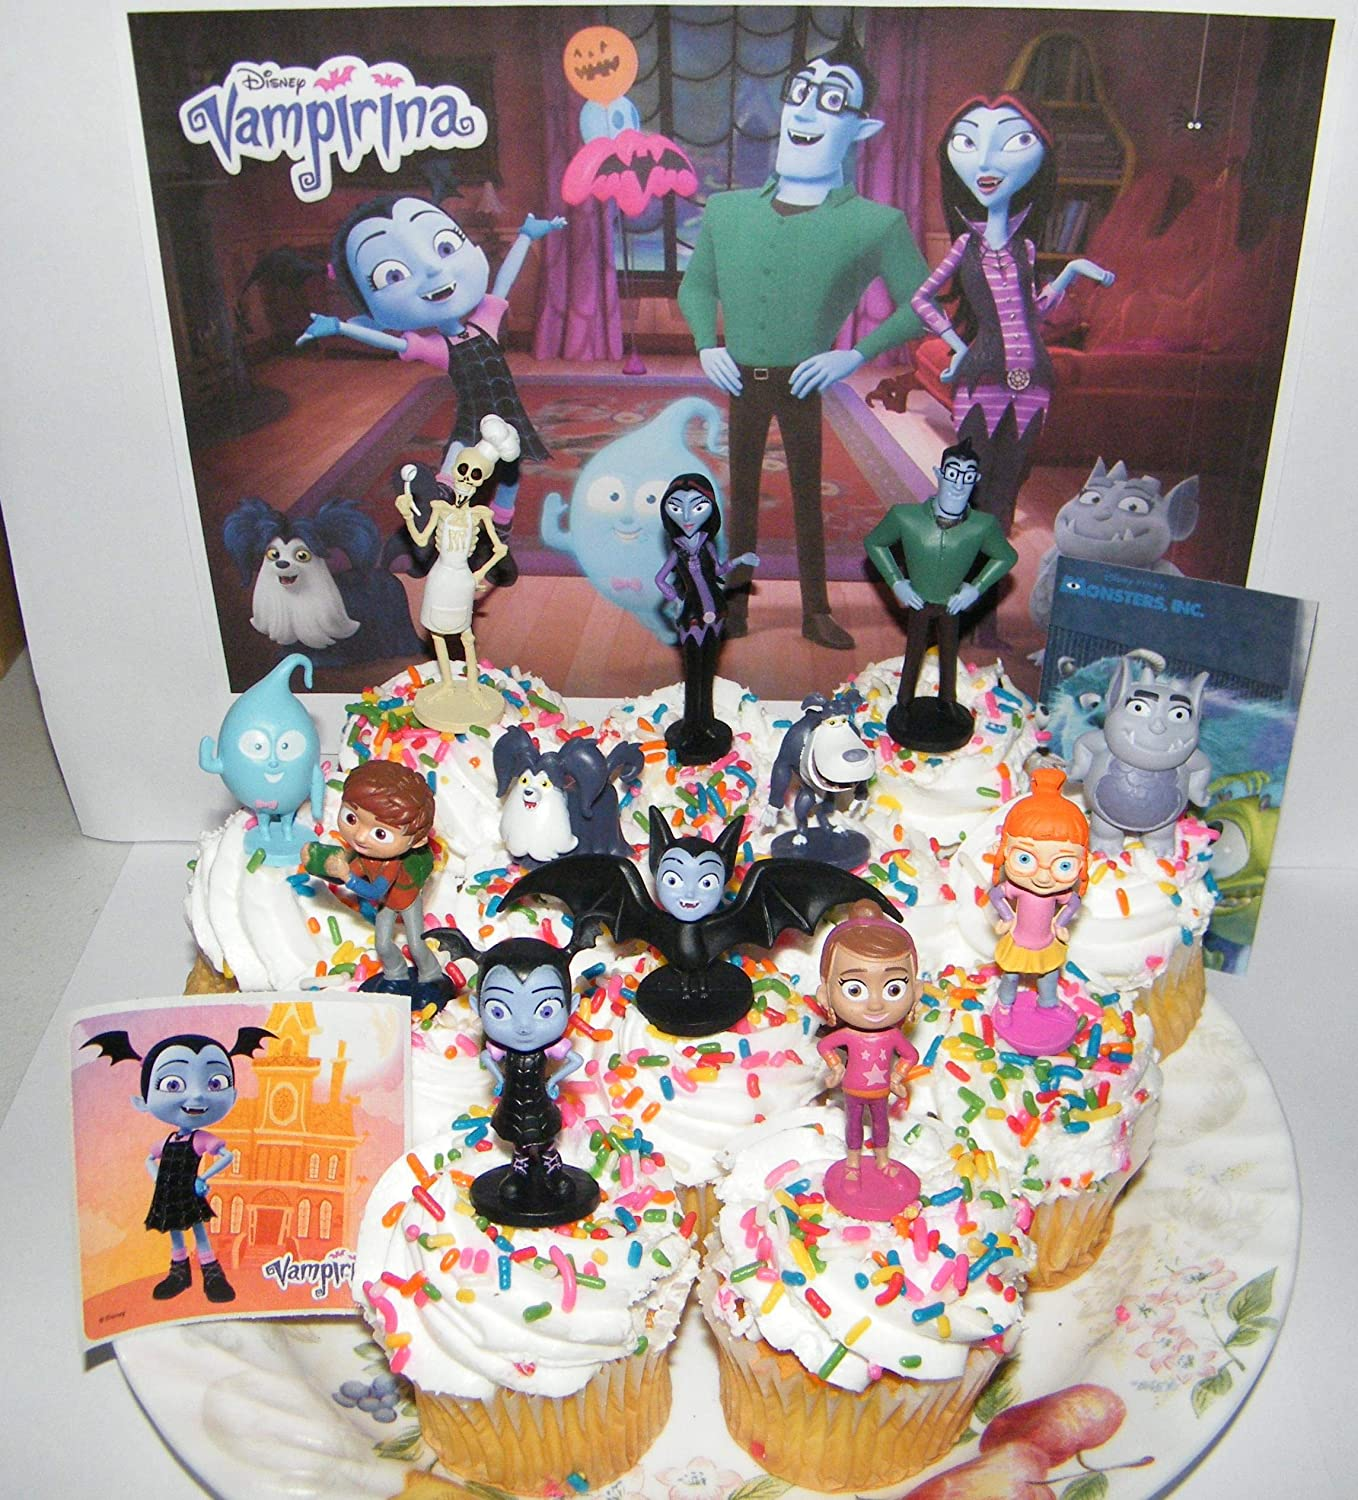 Disney Vampirina Deluxe Cake Toppers Cupcake Decorations Set of 14 with 12 Figures and 2 Fun Stickers Featuring Family, Friends, Wolfie, Demi the ...